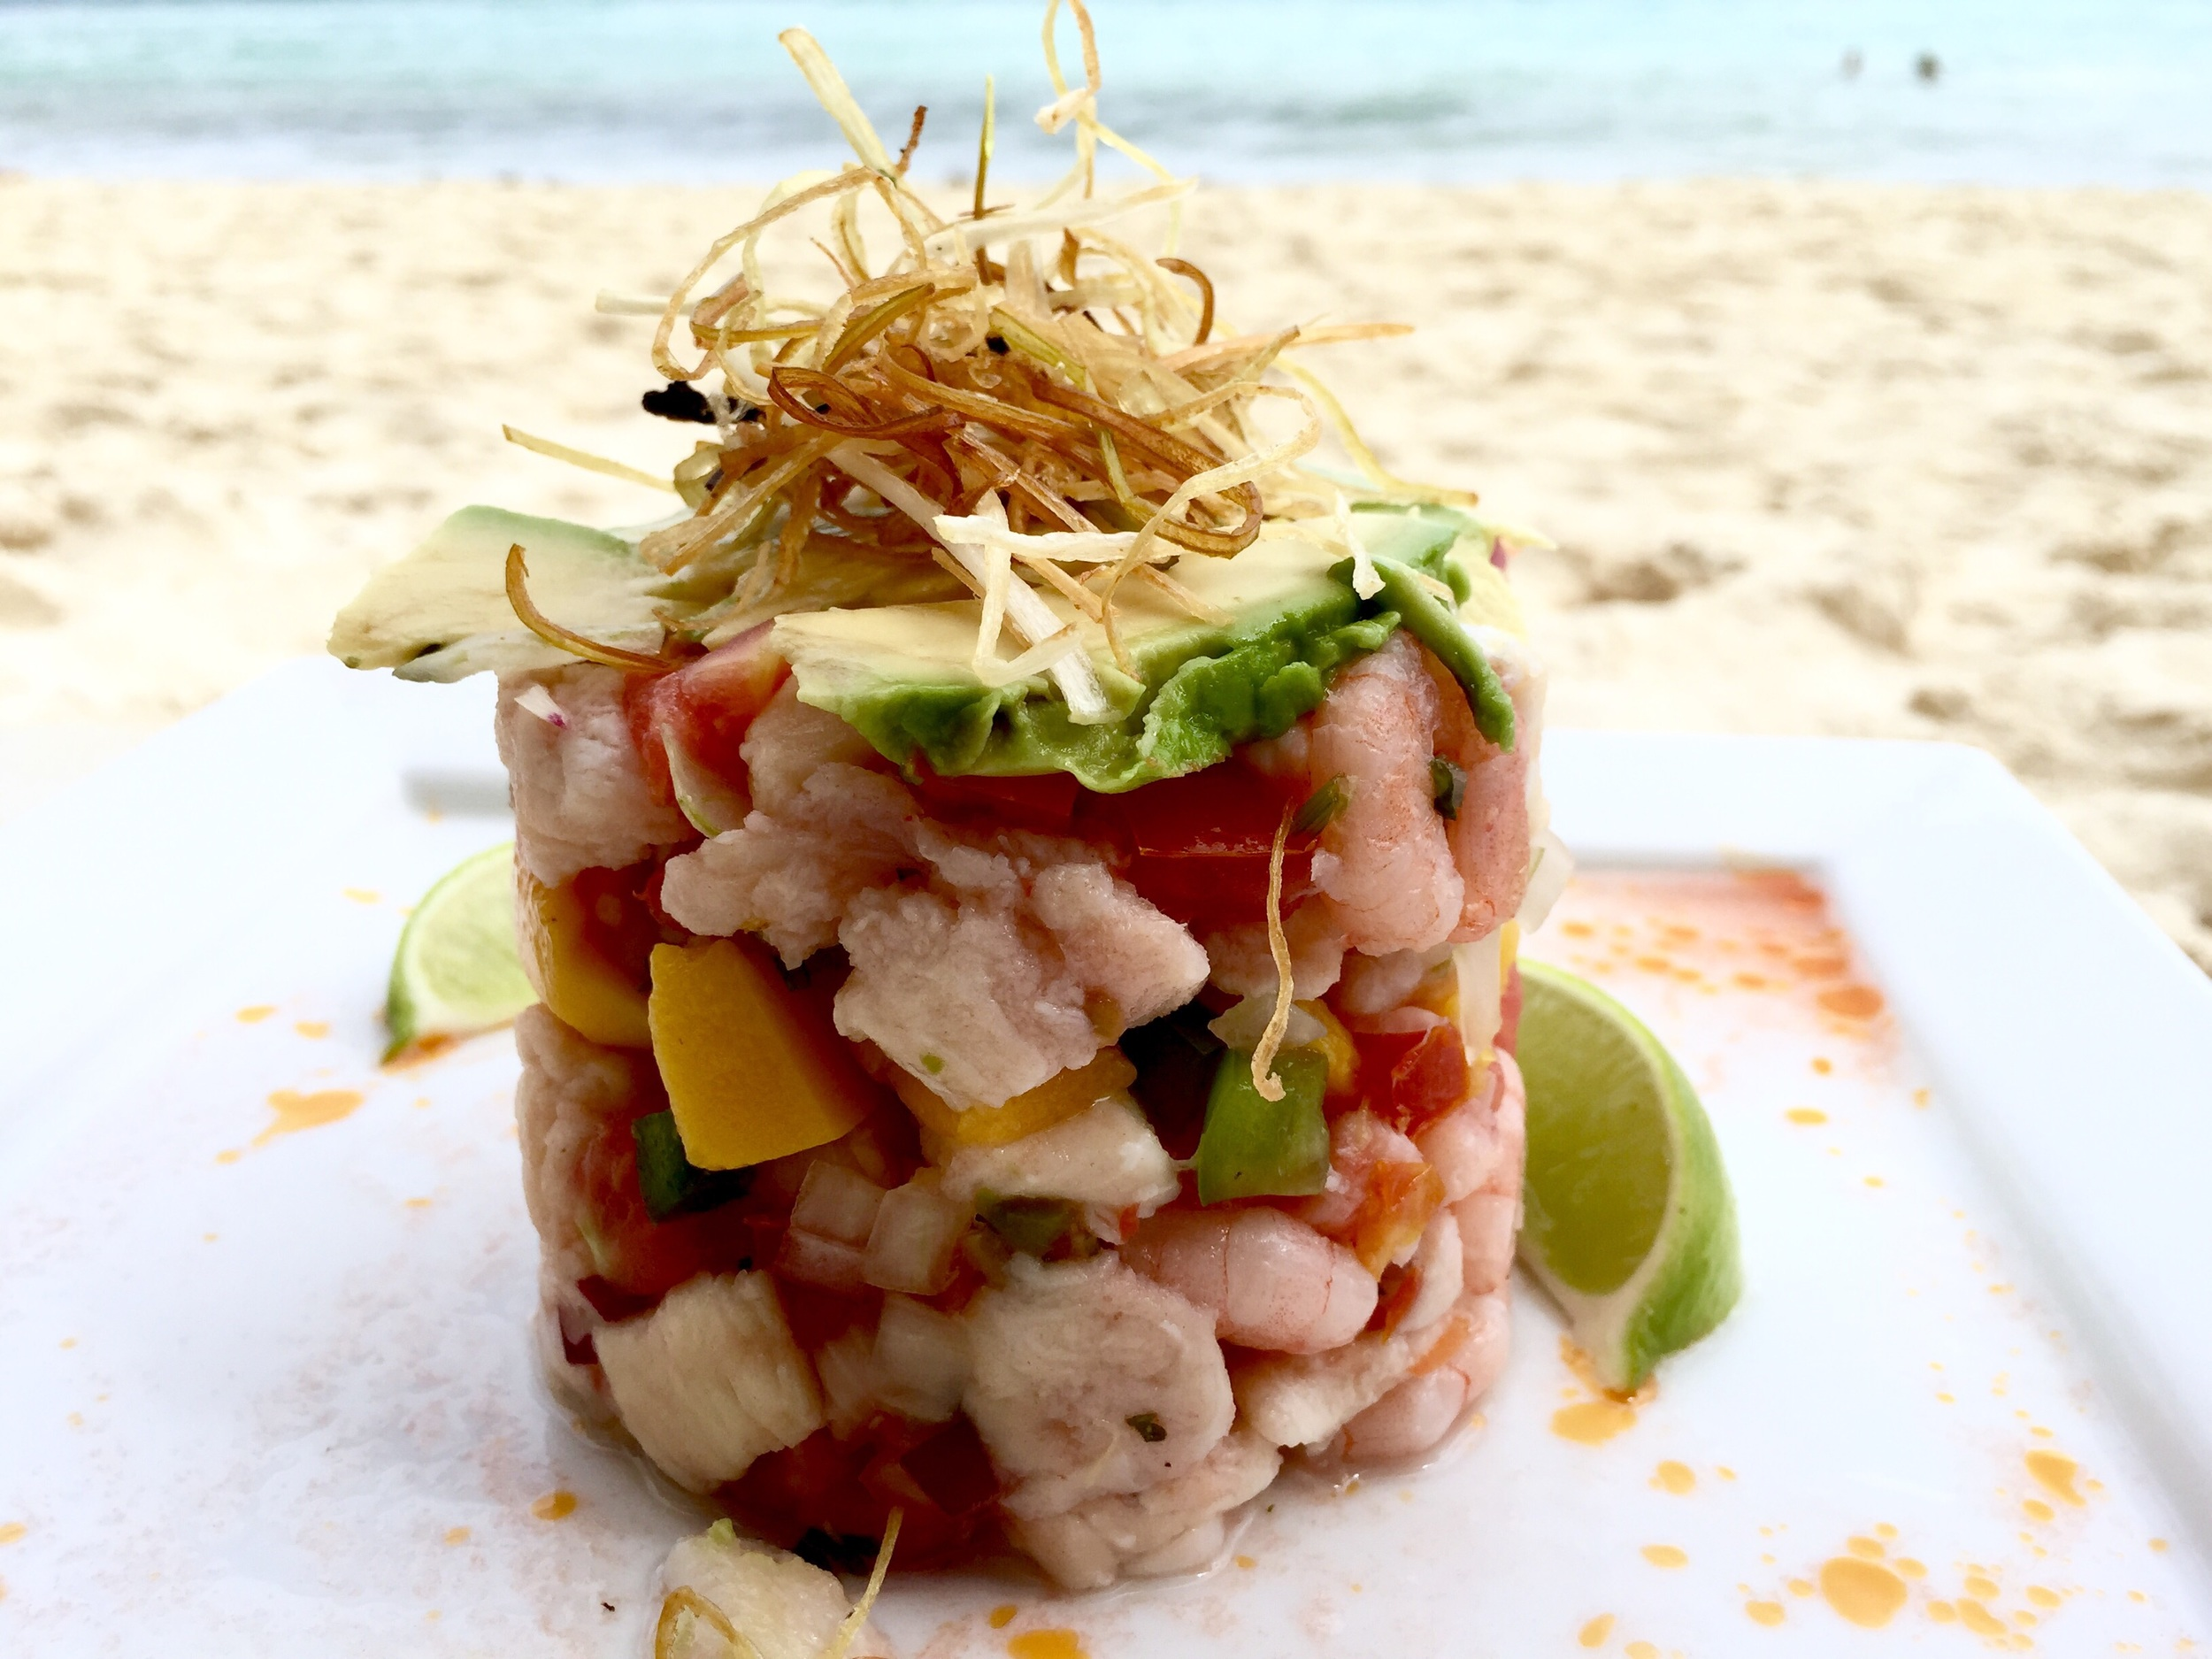 Ceviche on the beach